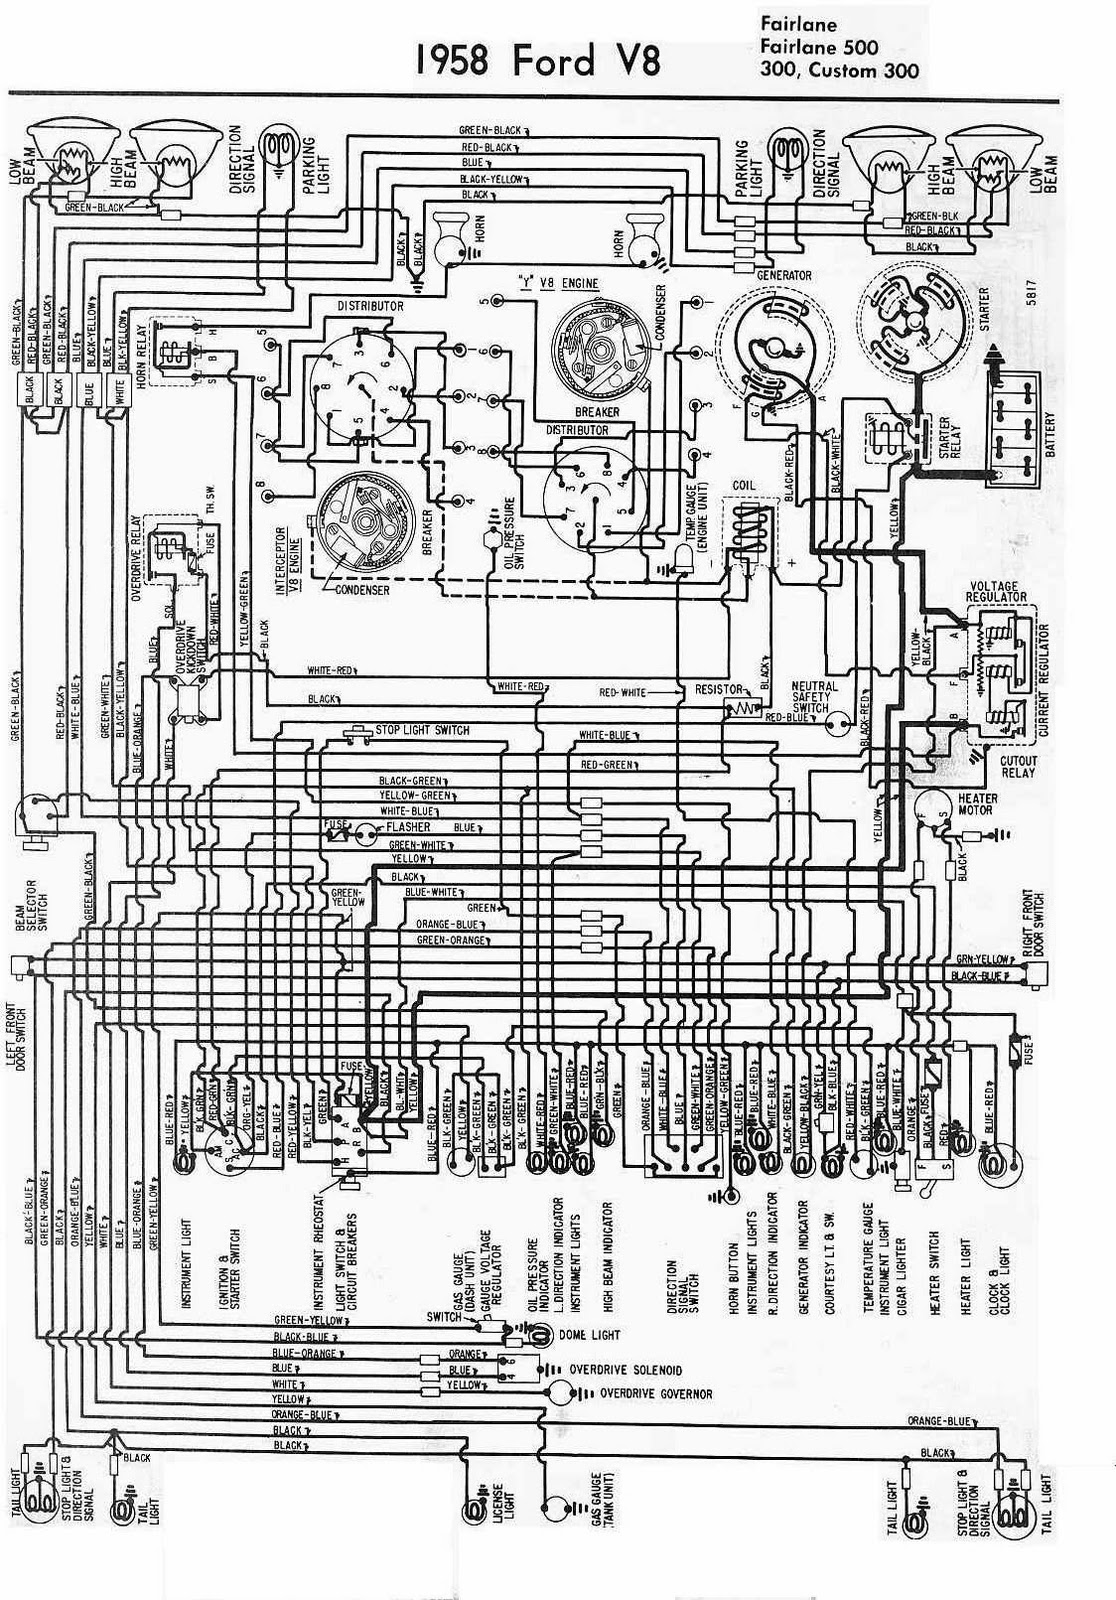 1964 ford thunderbird wiring 1964 ford thunderbird convertible wiring diagram electrical wiring diagram for 1958 ford v8 all about #9